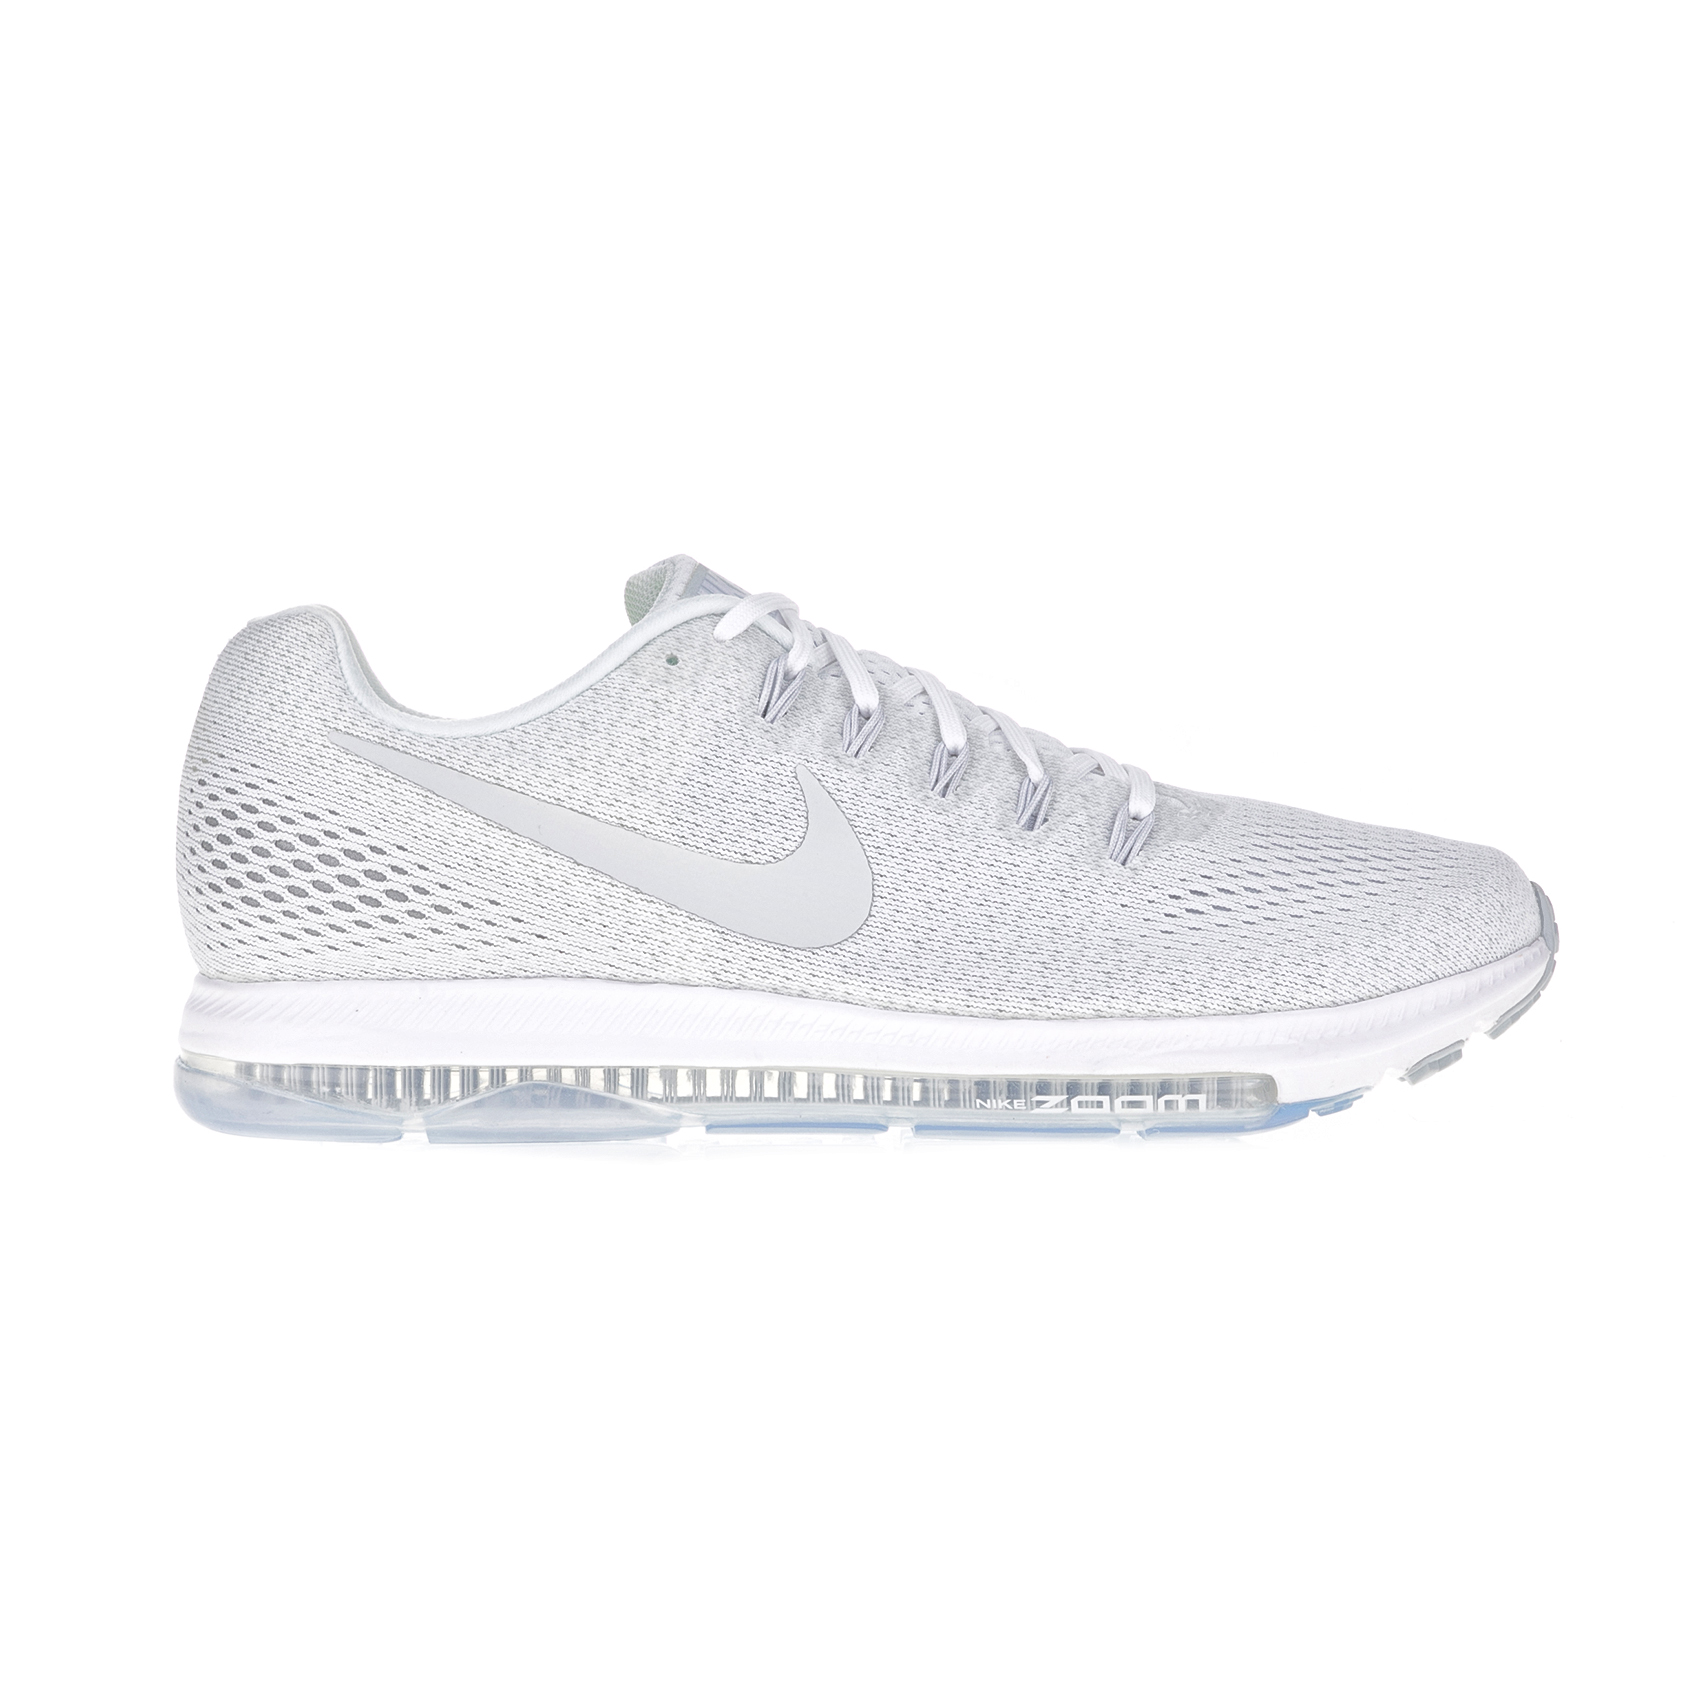 NIKE - Ανδρικά αθλητικά παπούτσια NIKE ZOOM ALL OUT LOW λευκά